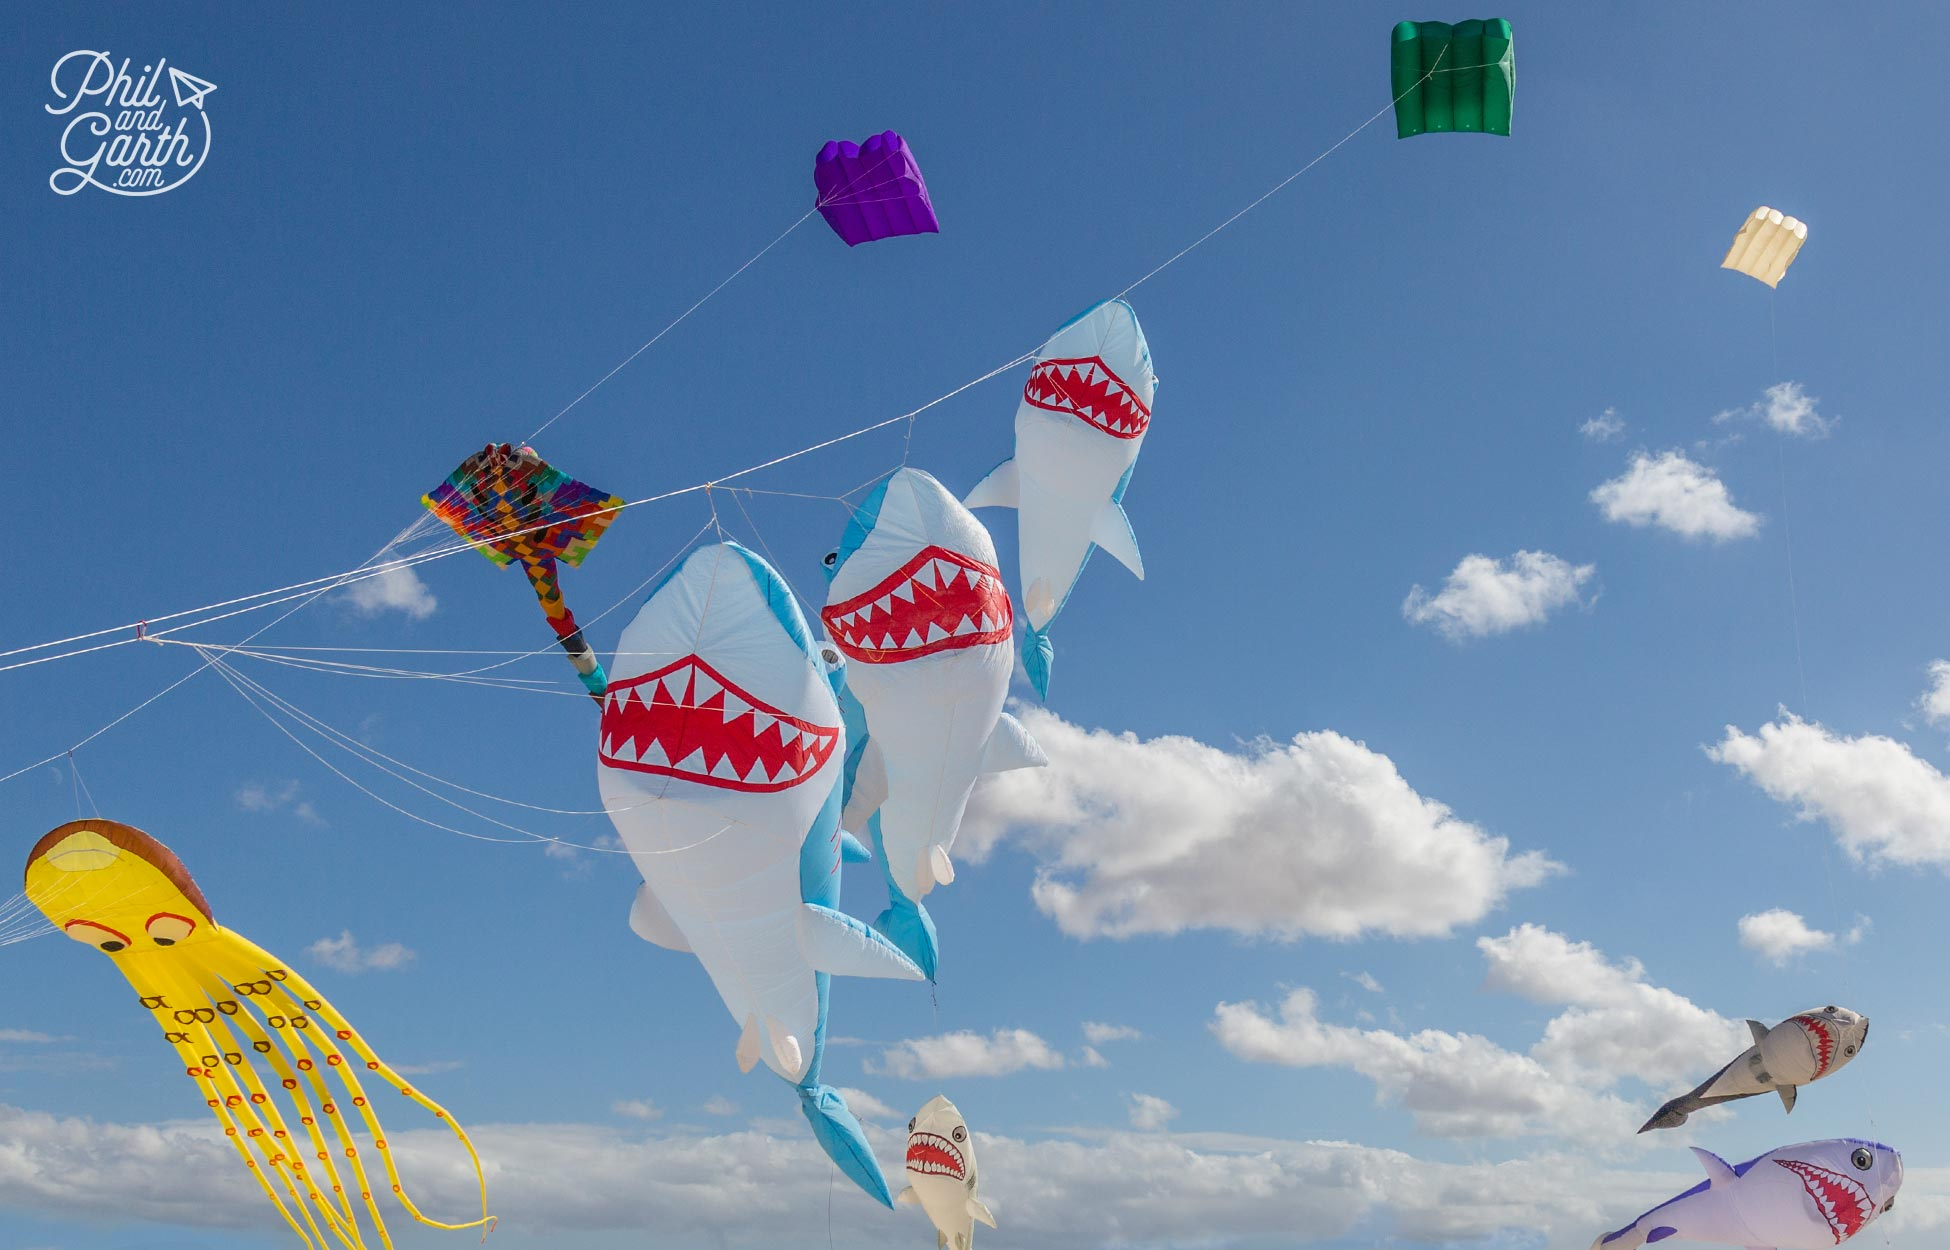 Fantastic kite displays at Playa Chica